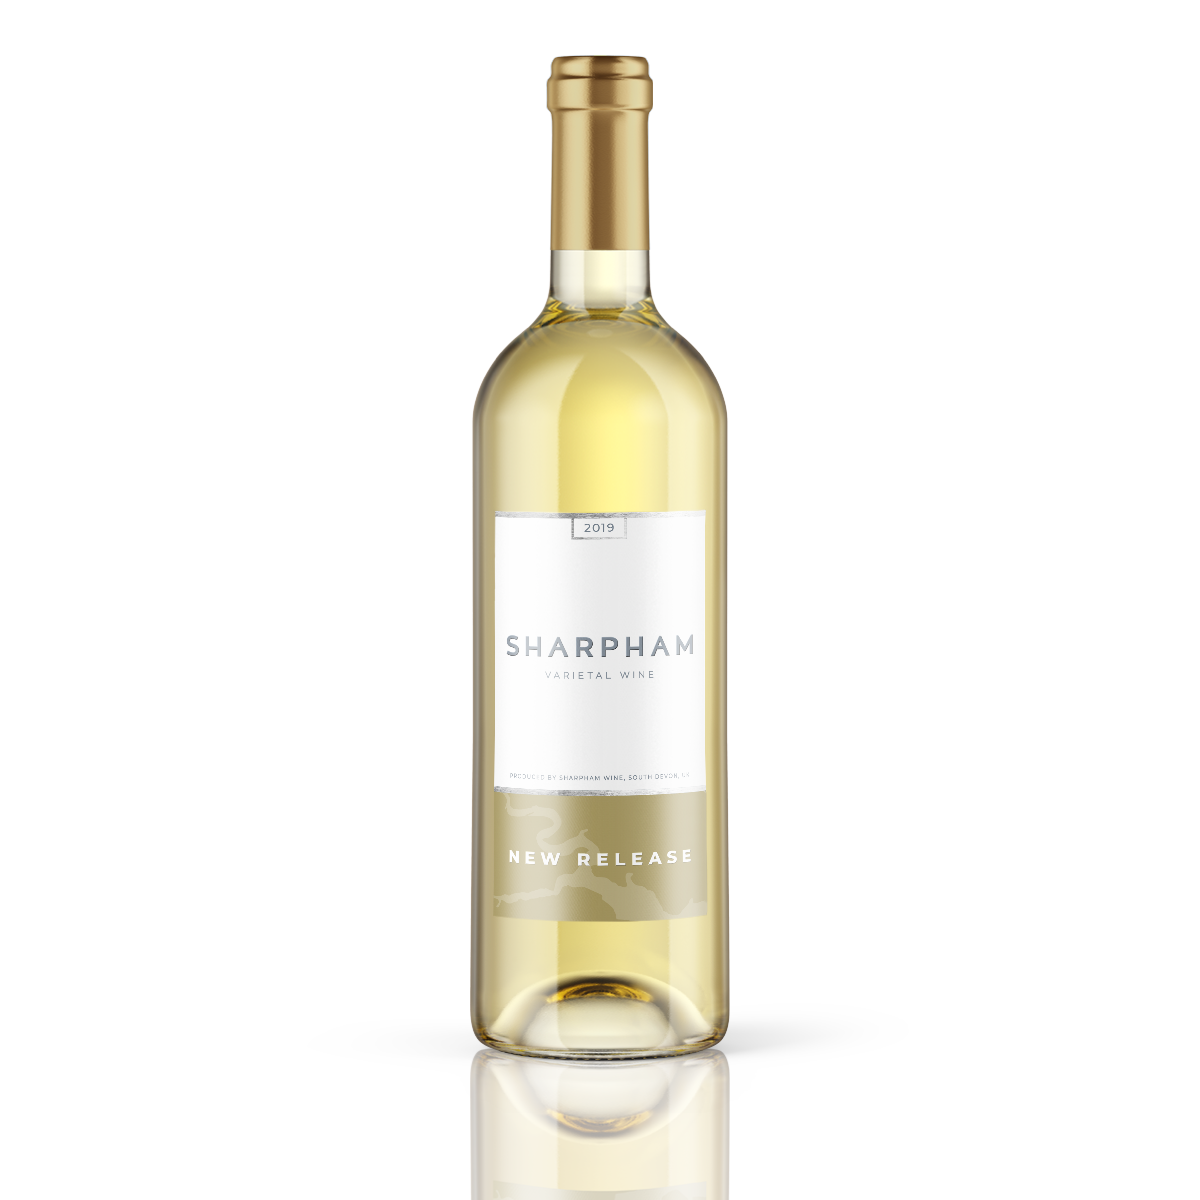 New-Release-2019-Devon-White-Wine-Sharpham-Totnes-1200x1200